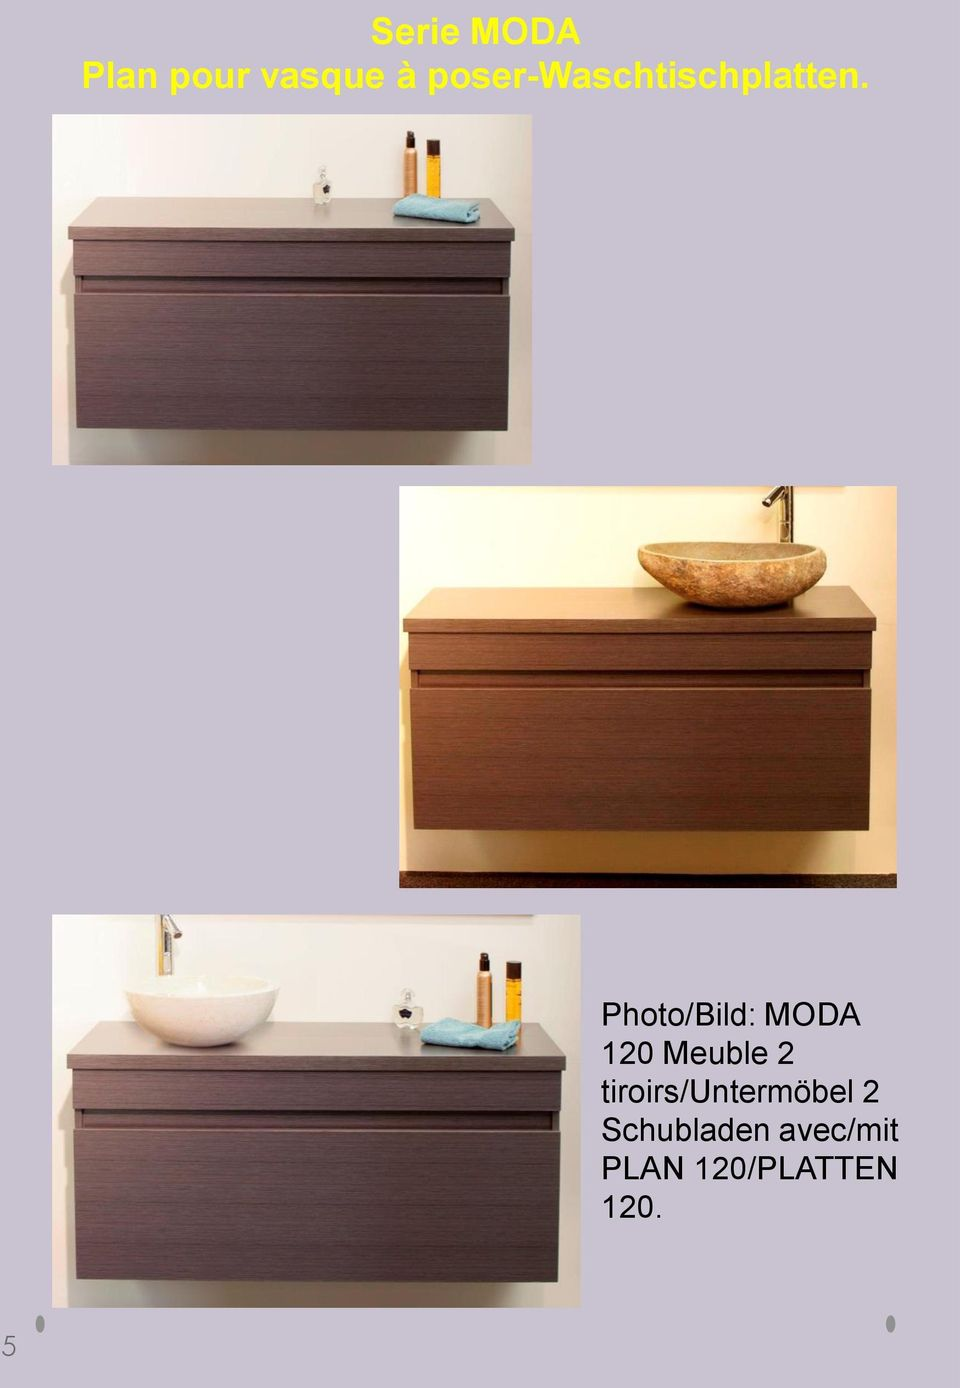 Photo/Bild: MODA 120 Meuble 2